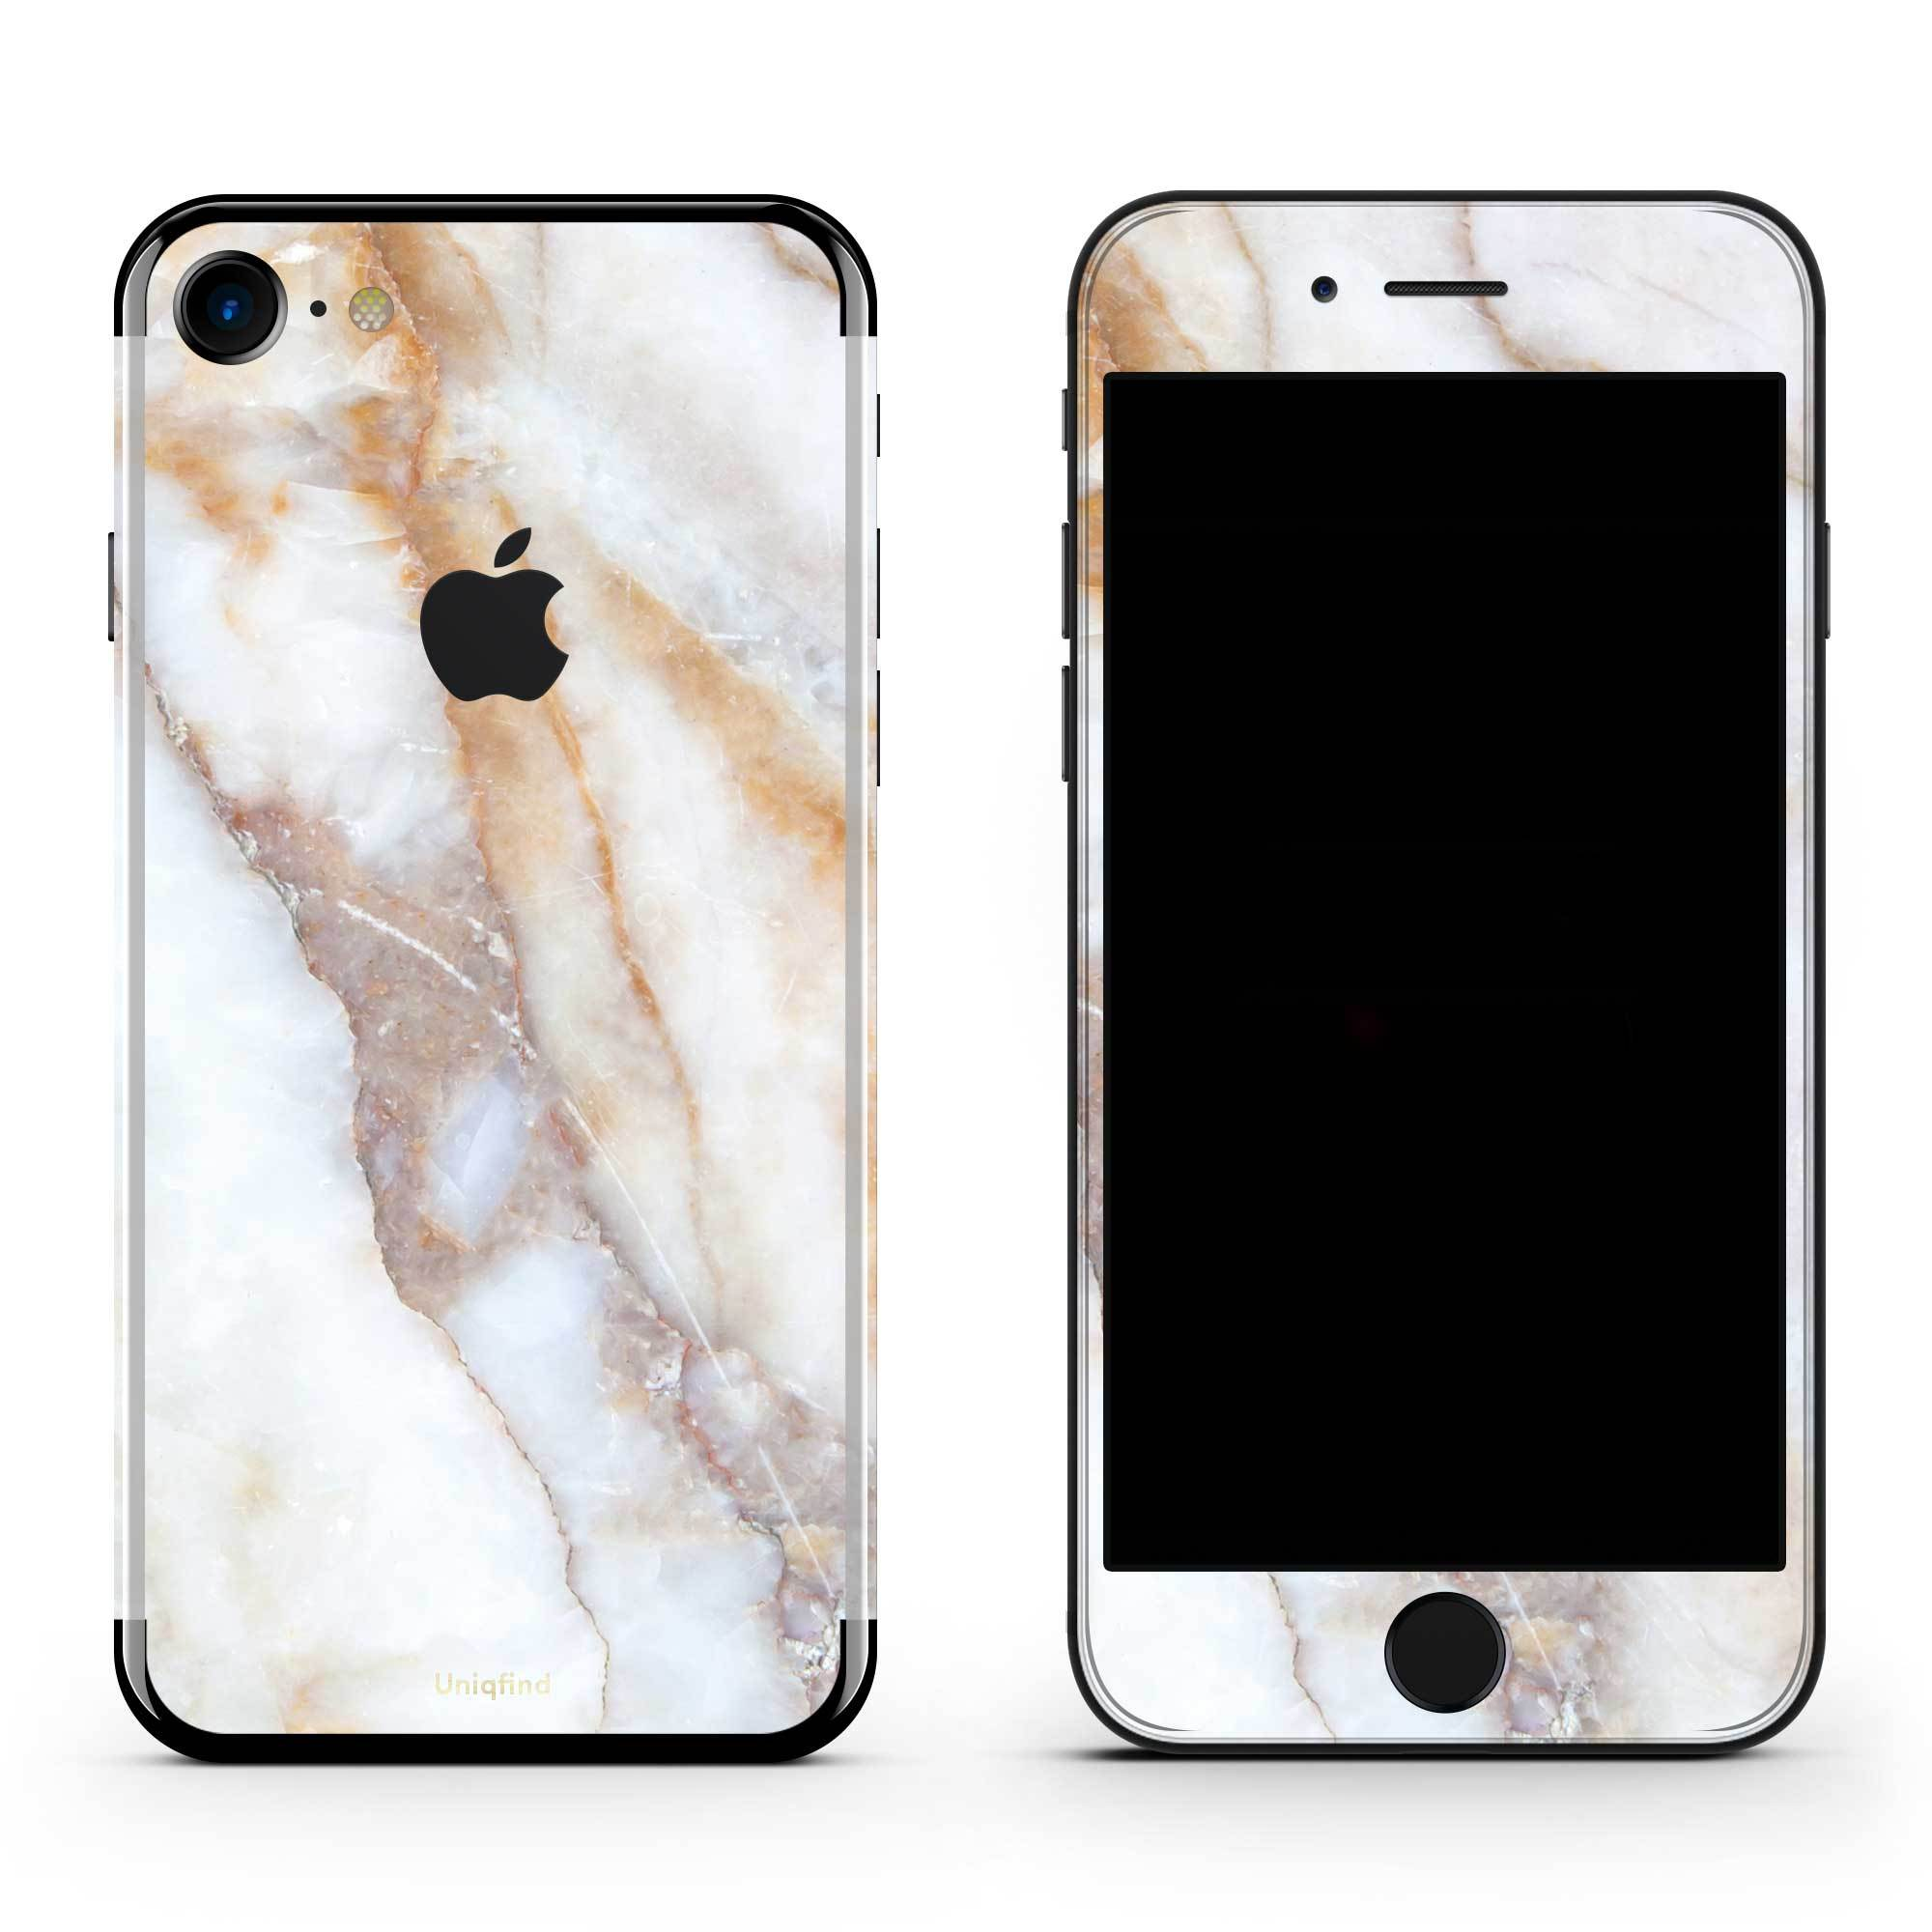 Vanilla Marble iPhone 6/6S Plus Skin + Case